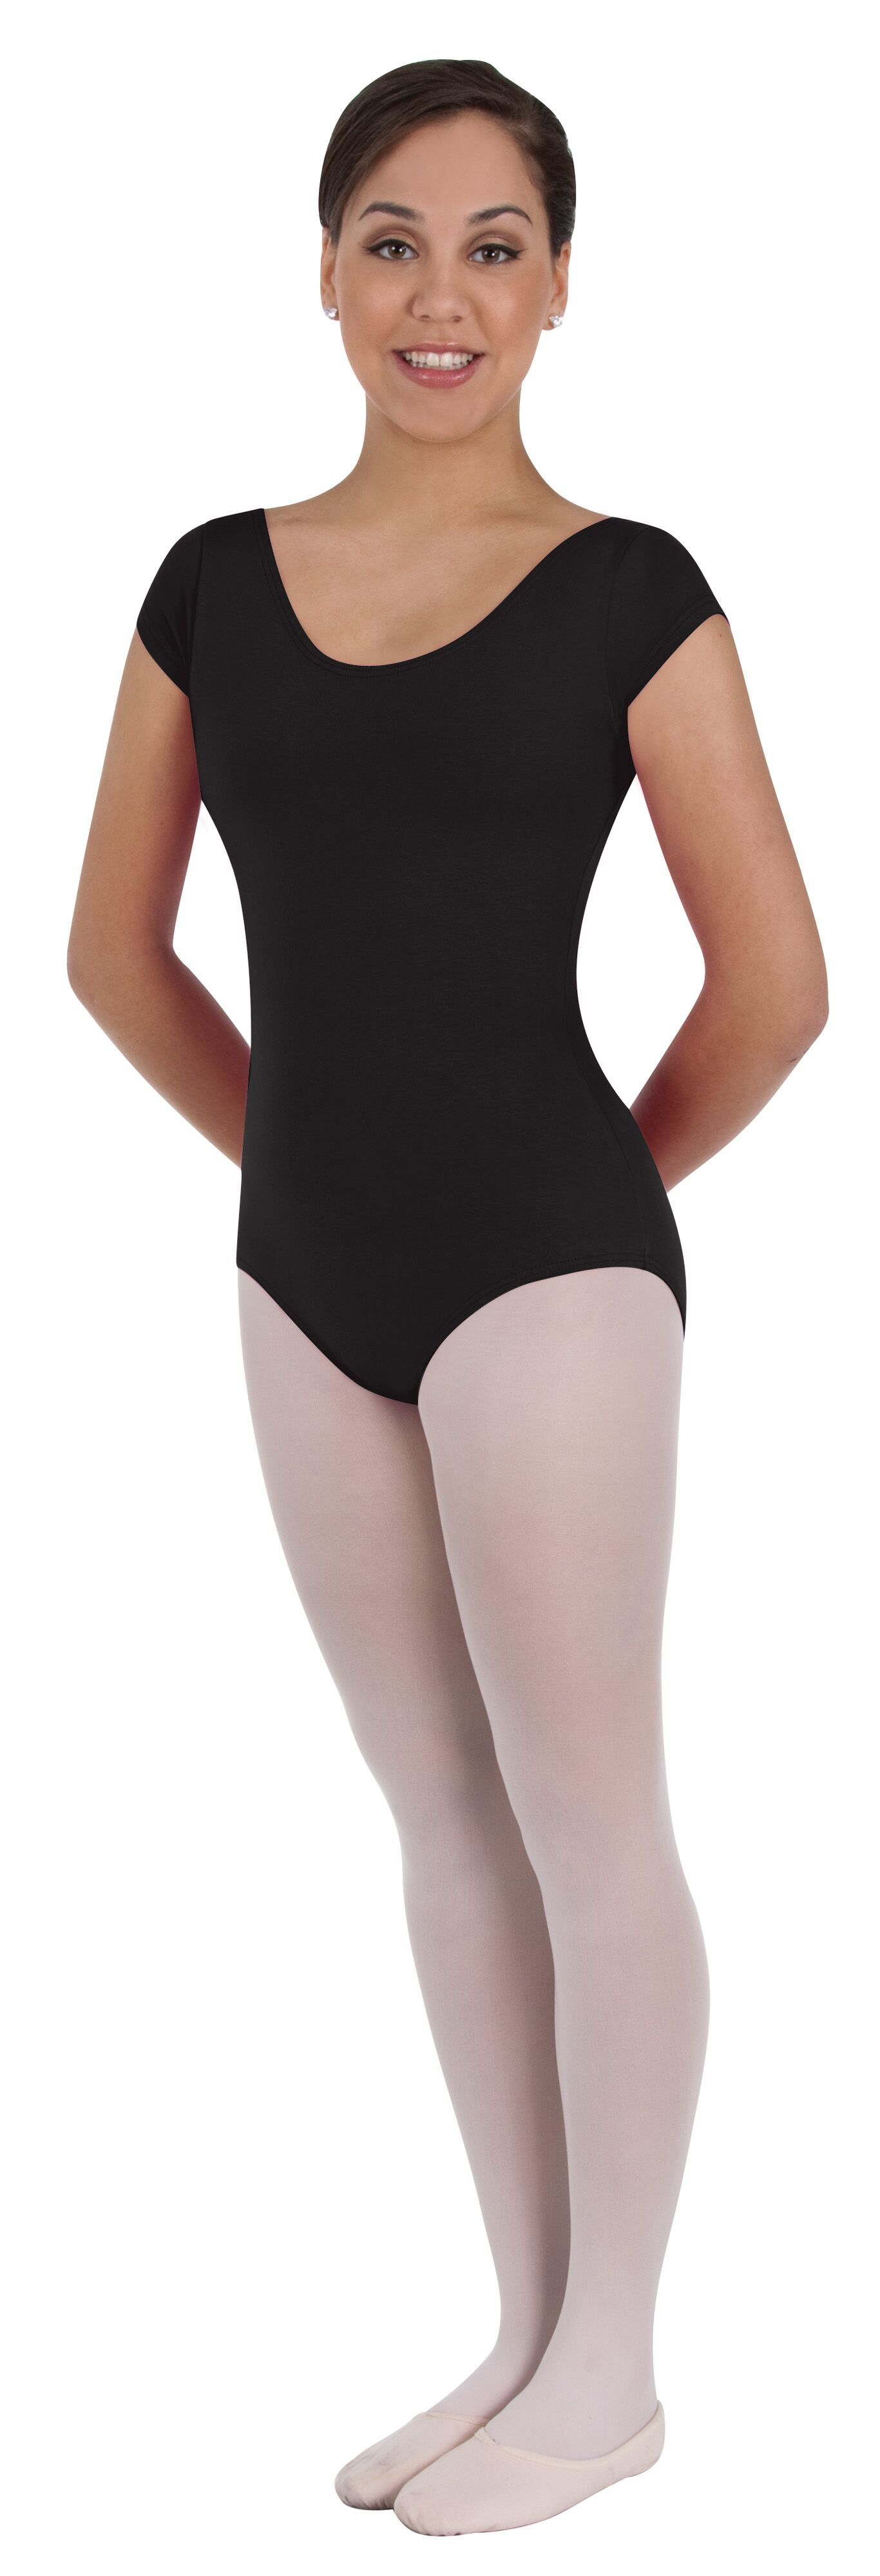 Short Sleeve Ballet Cut Leotard by Body Wrappers